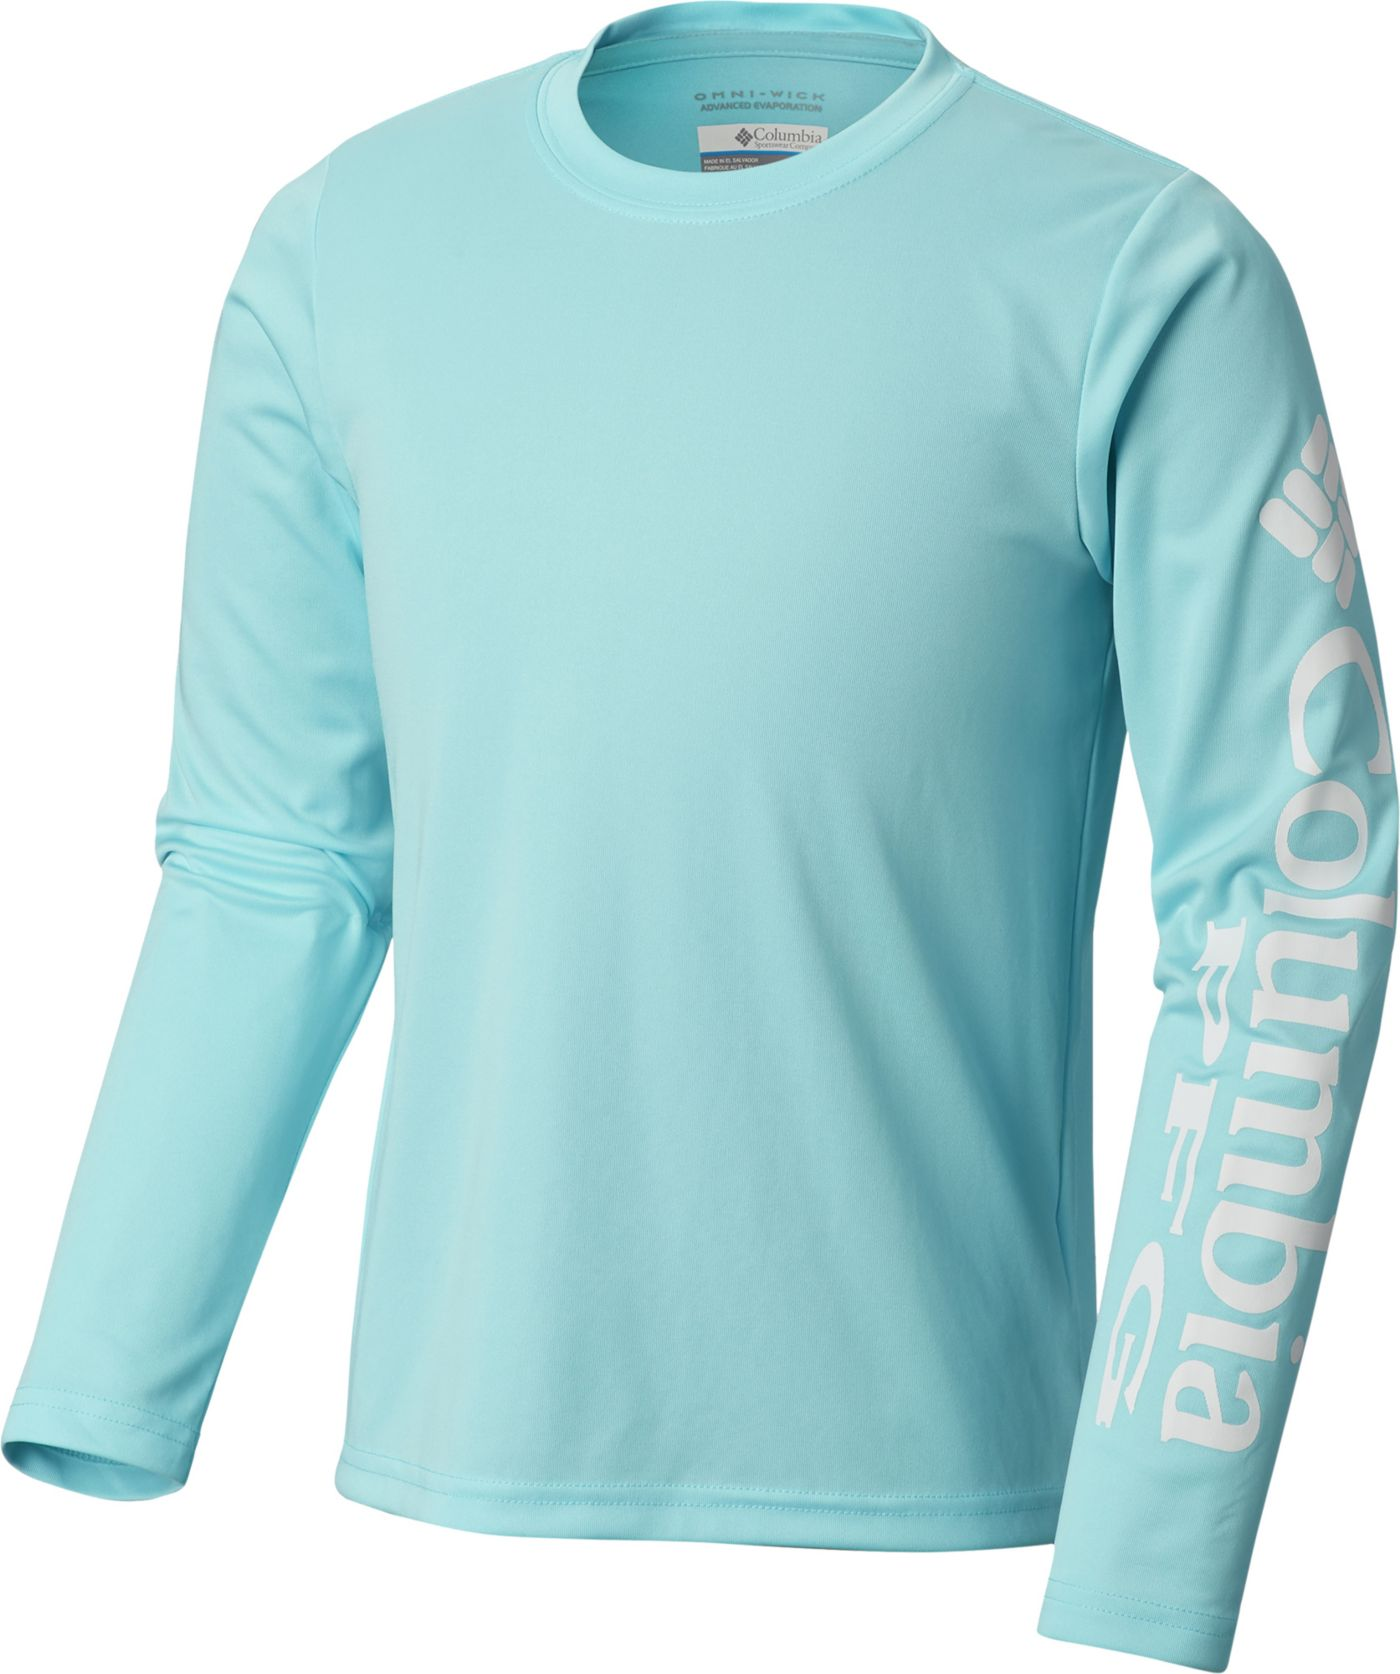 Columbia Youth PFG Terminal Tackle Long Sleeve T-Shirt